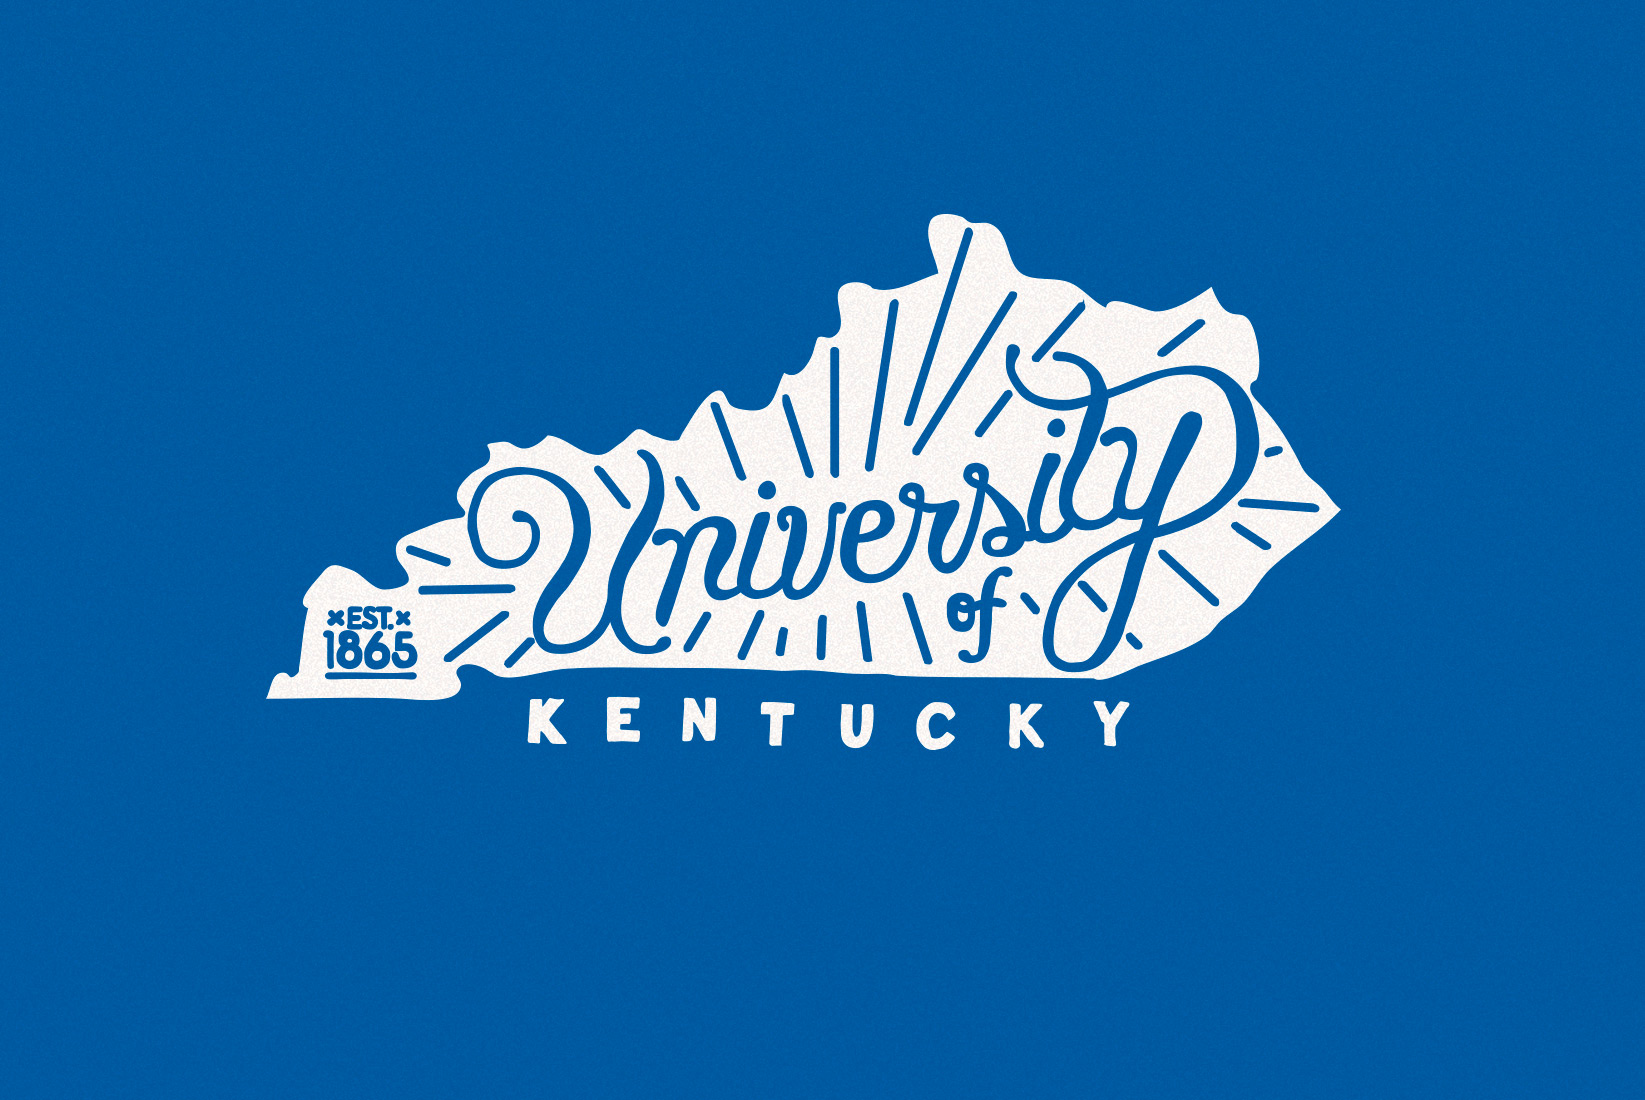 See Blue - University of Kentucky